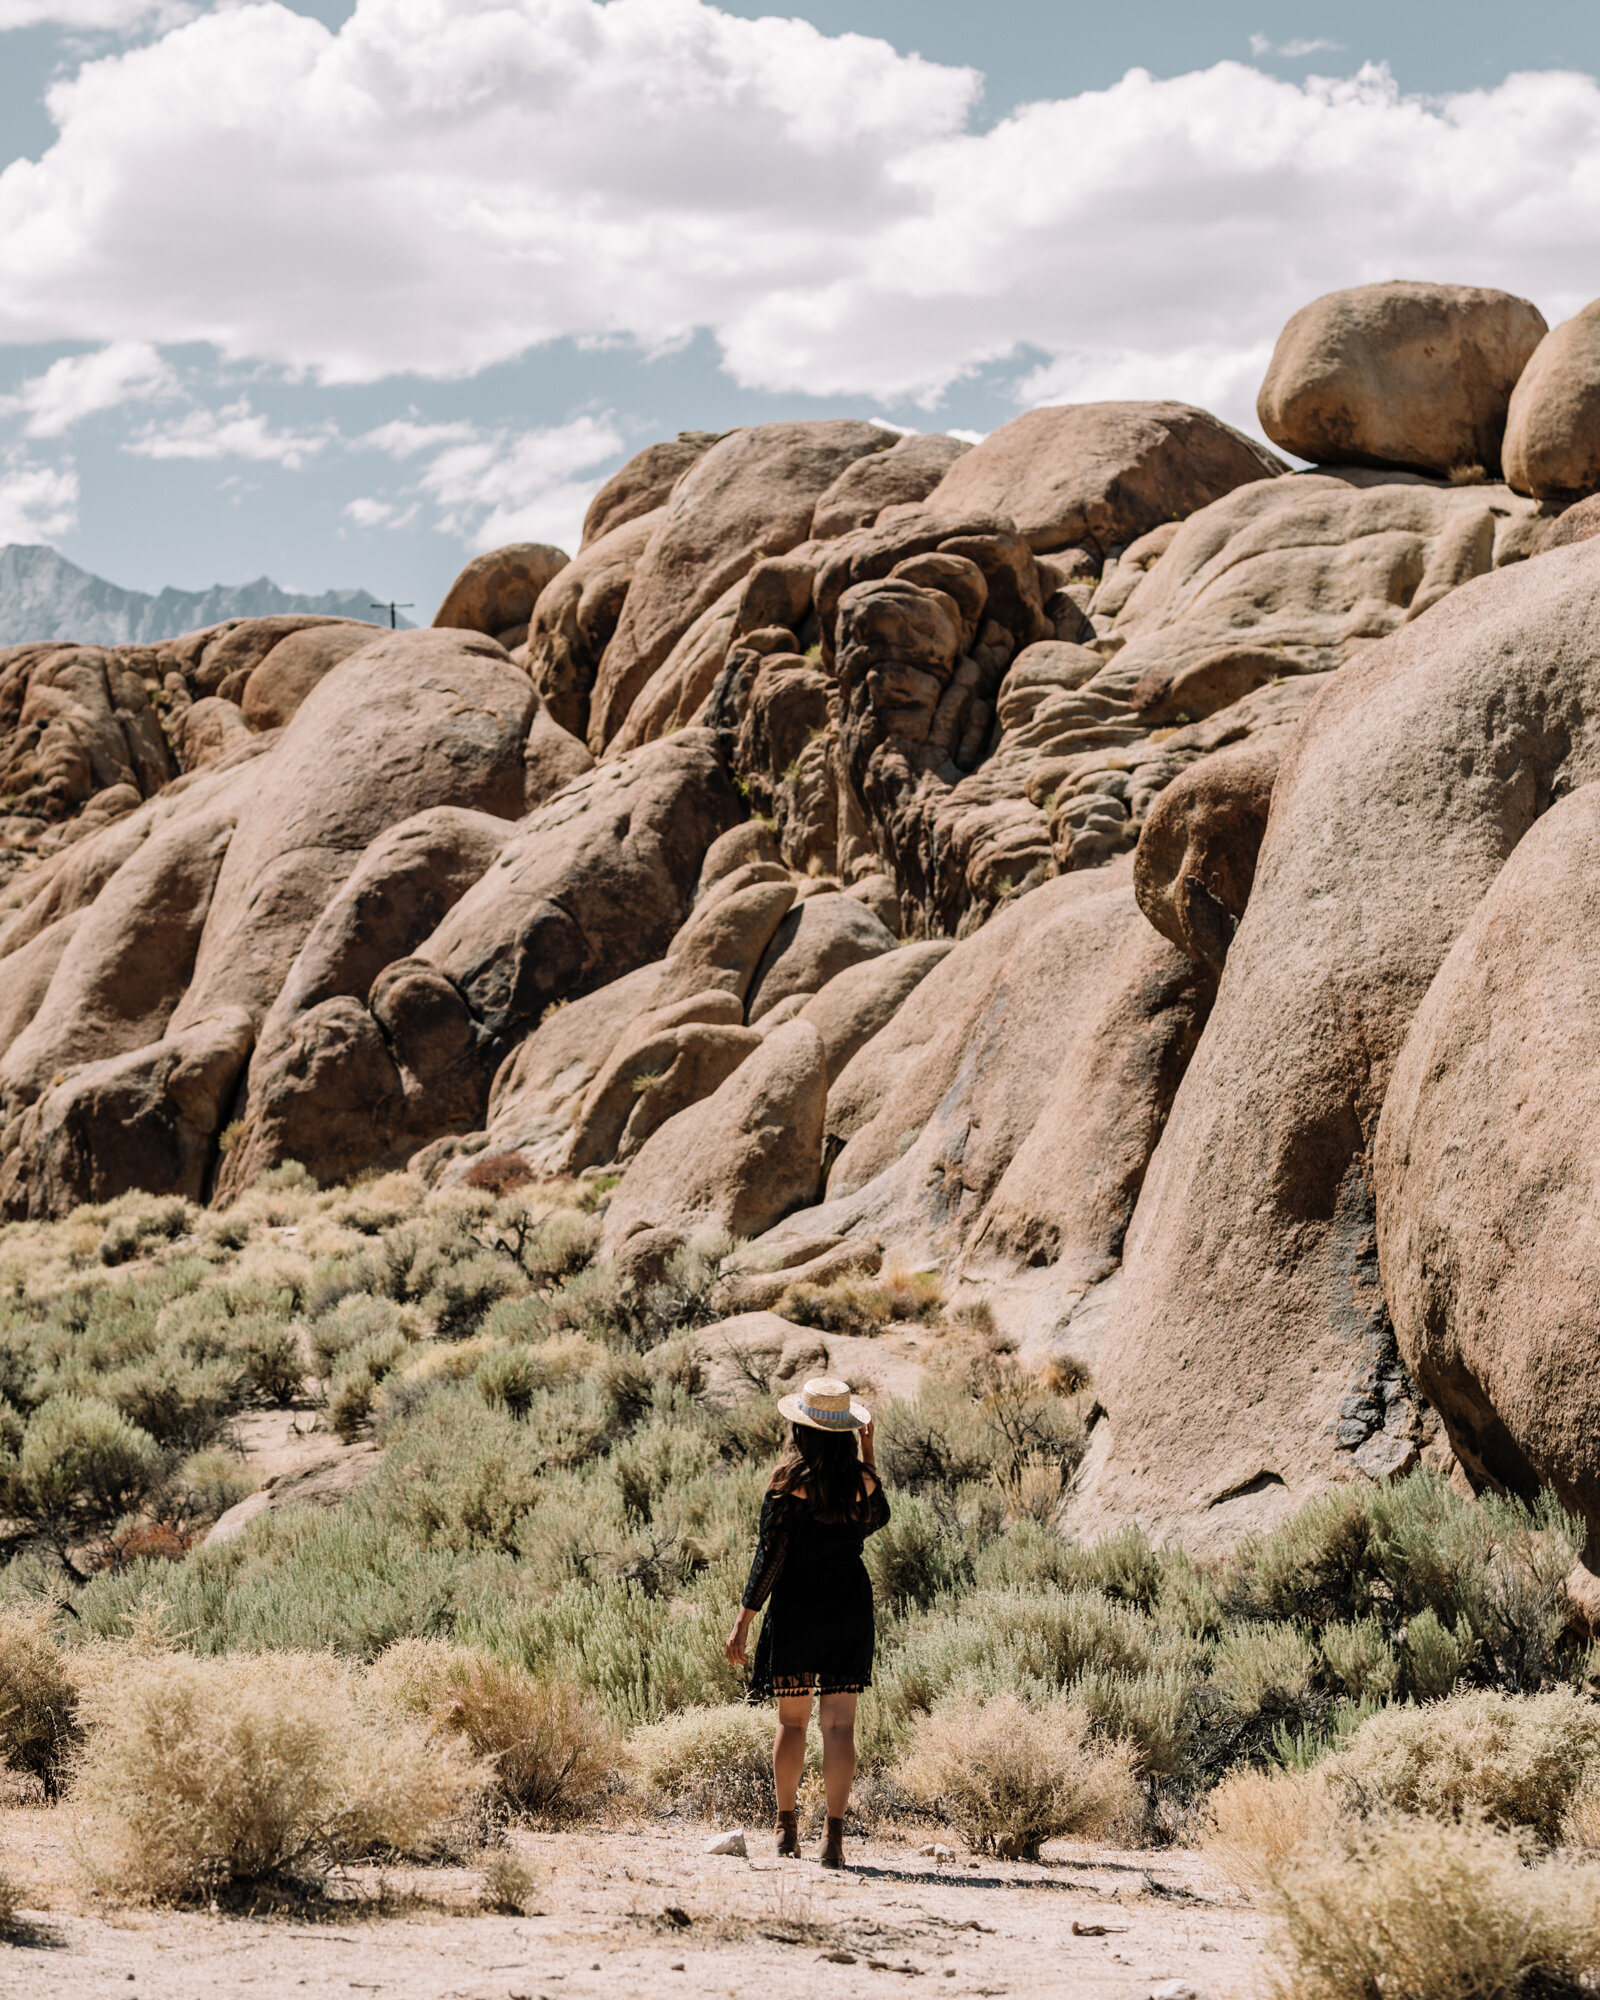 Rachel Off Duty: Woman Posing for a Photo in Alabama Hills, California